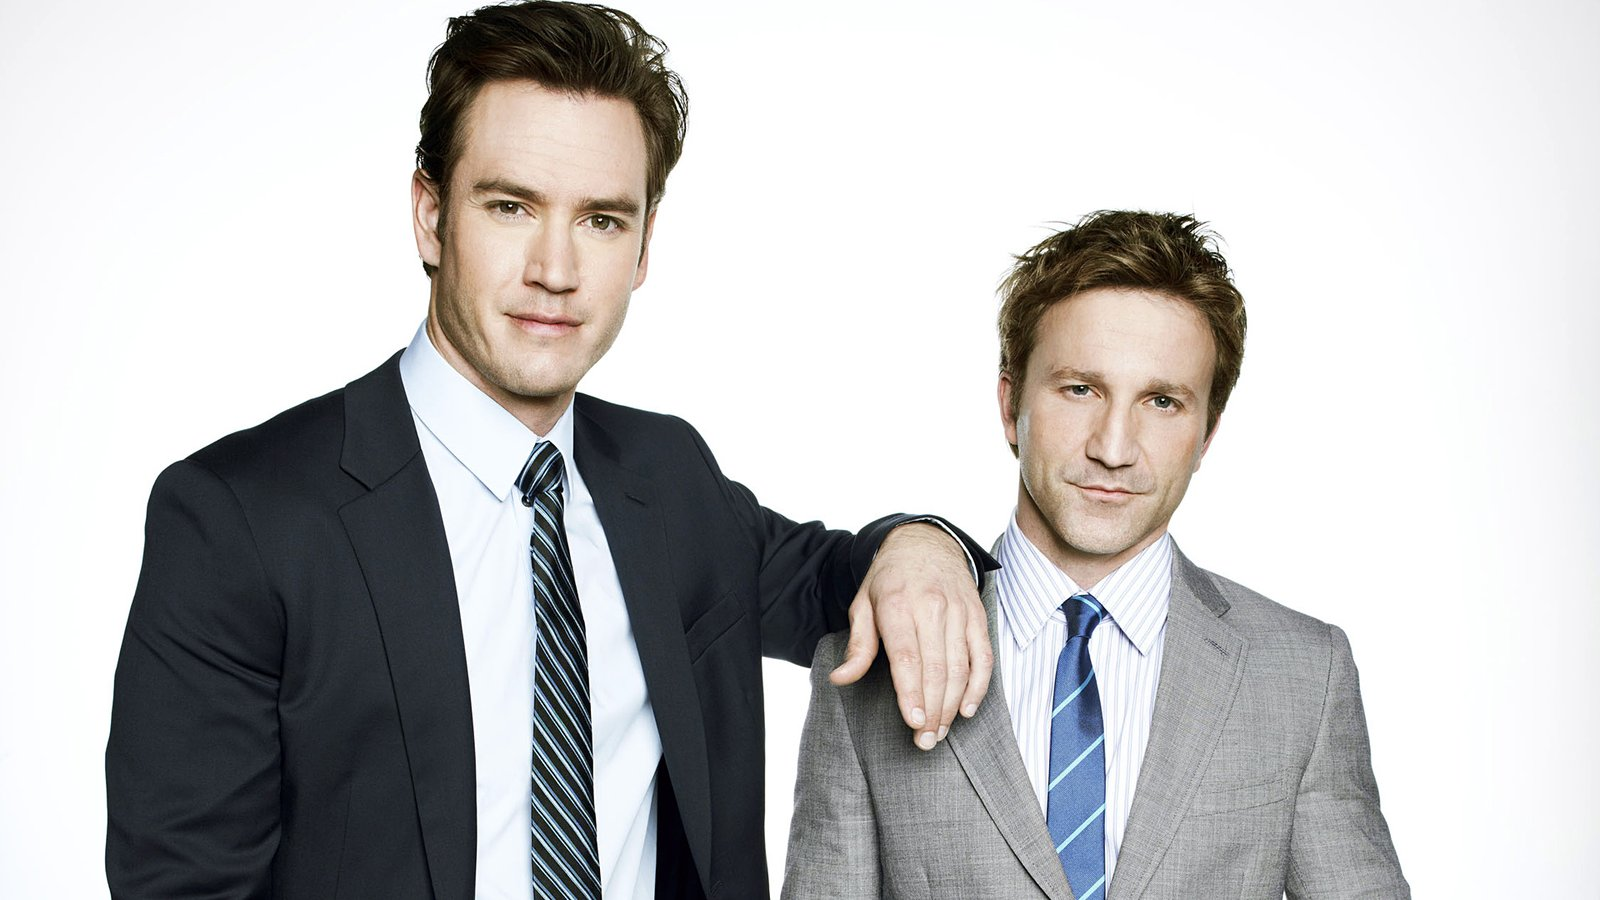 Компаньоны / Franklin & Bash background